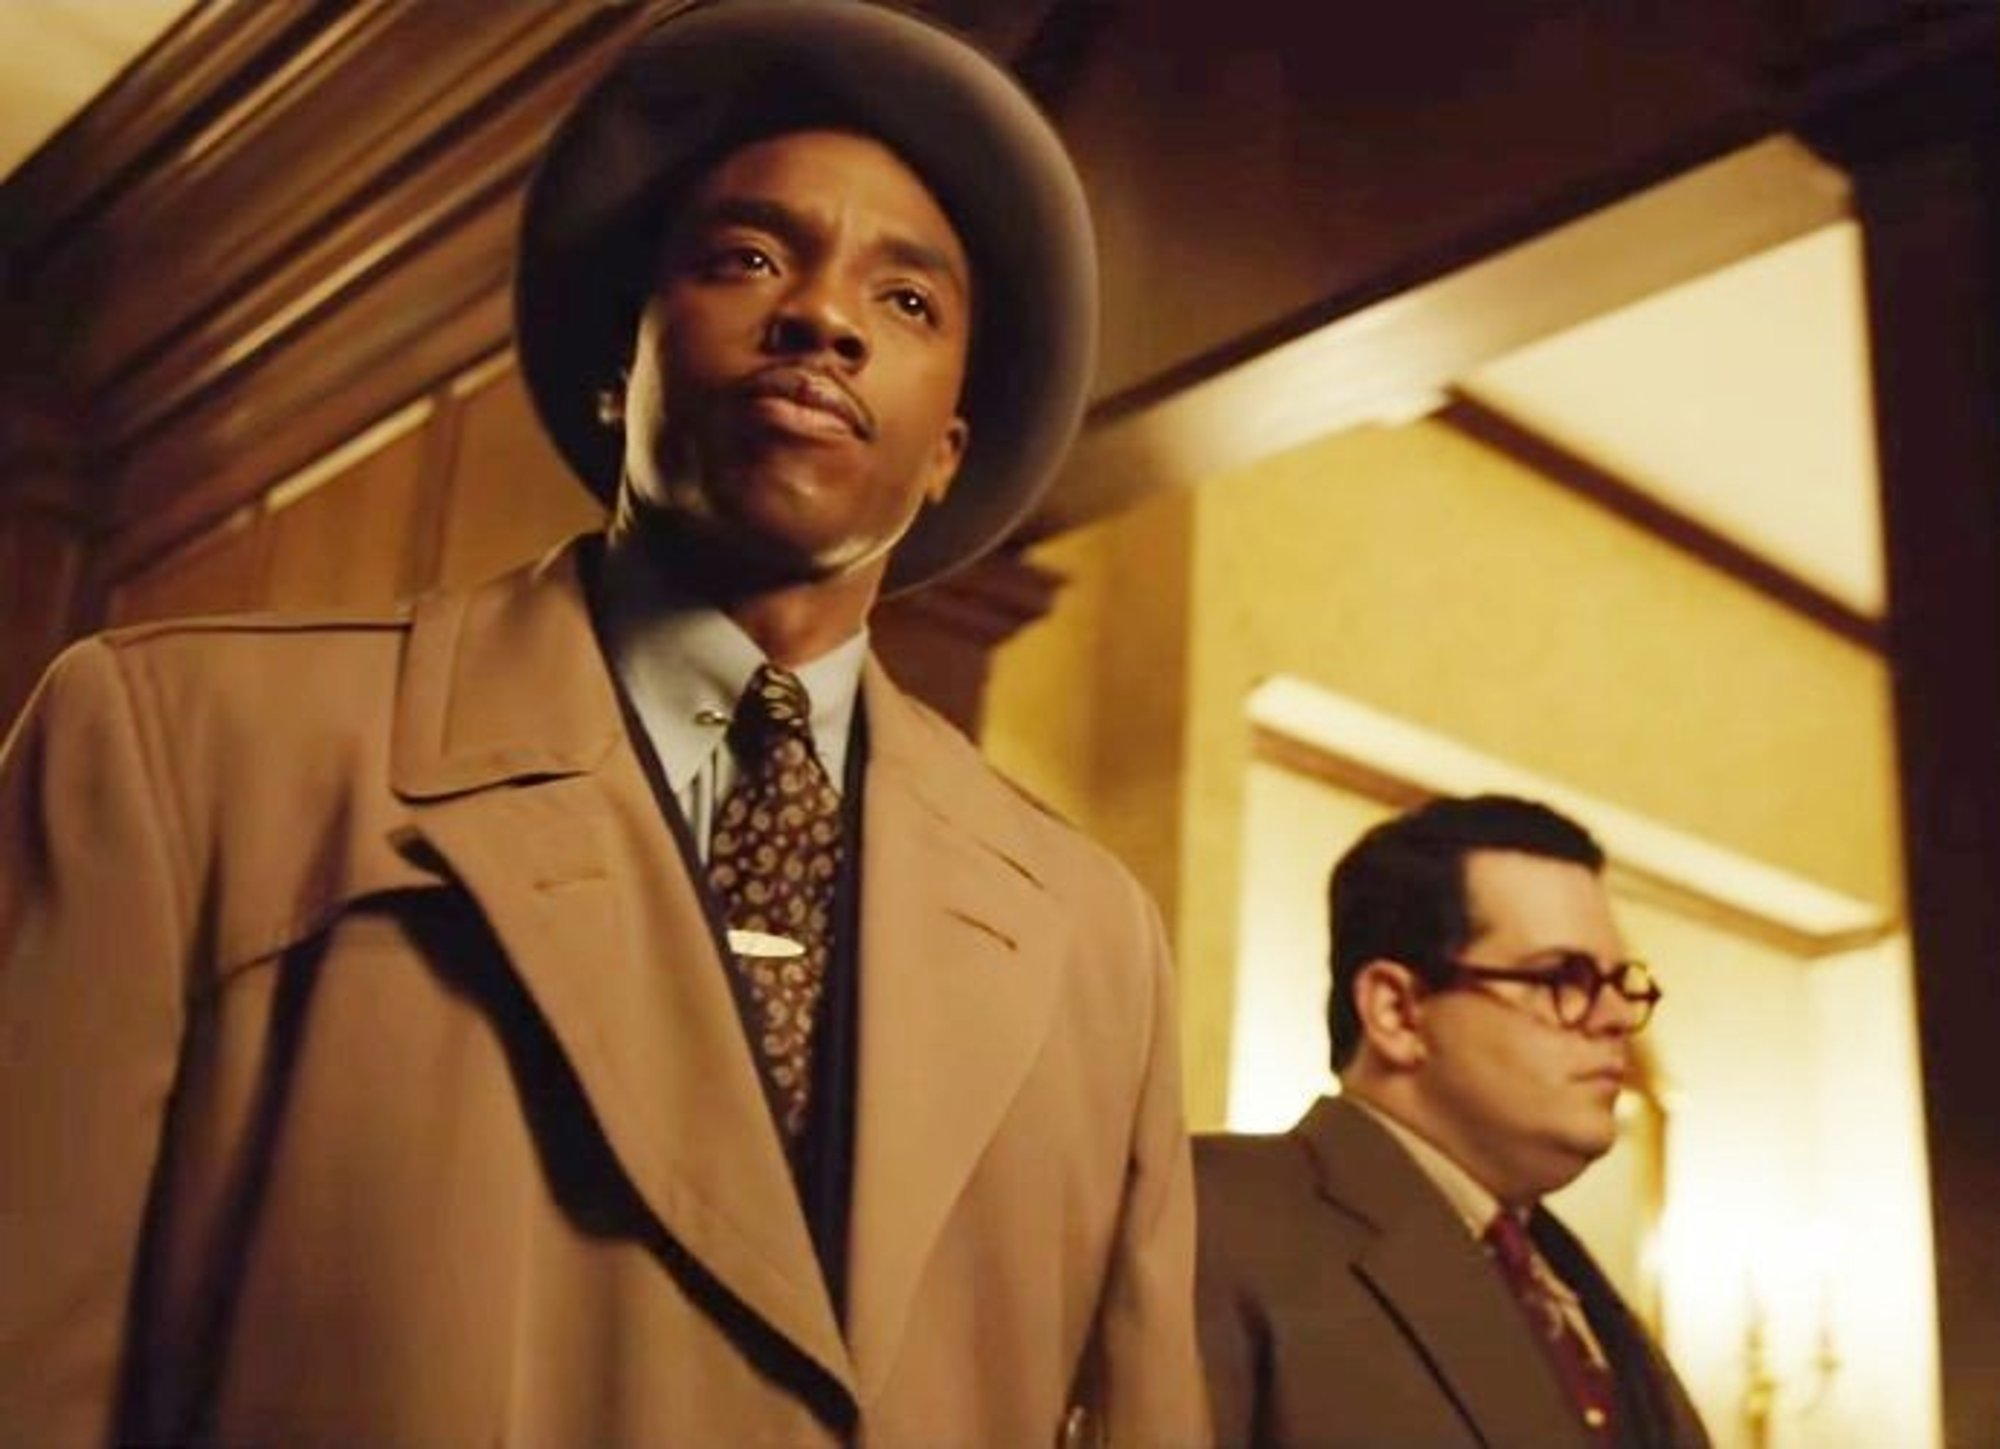 'Marshall' exposes Northern racism in the 1940s